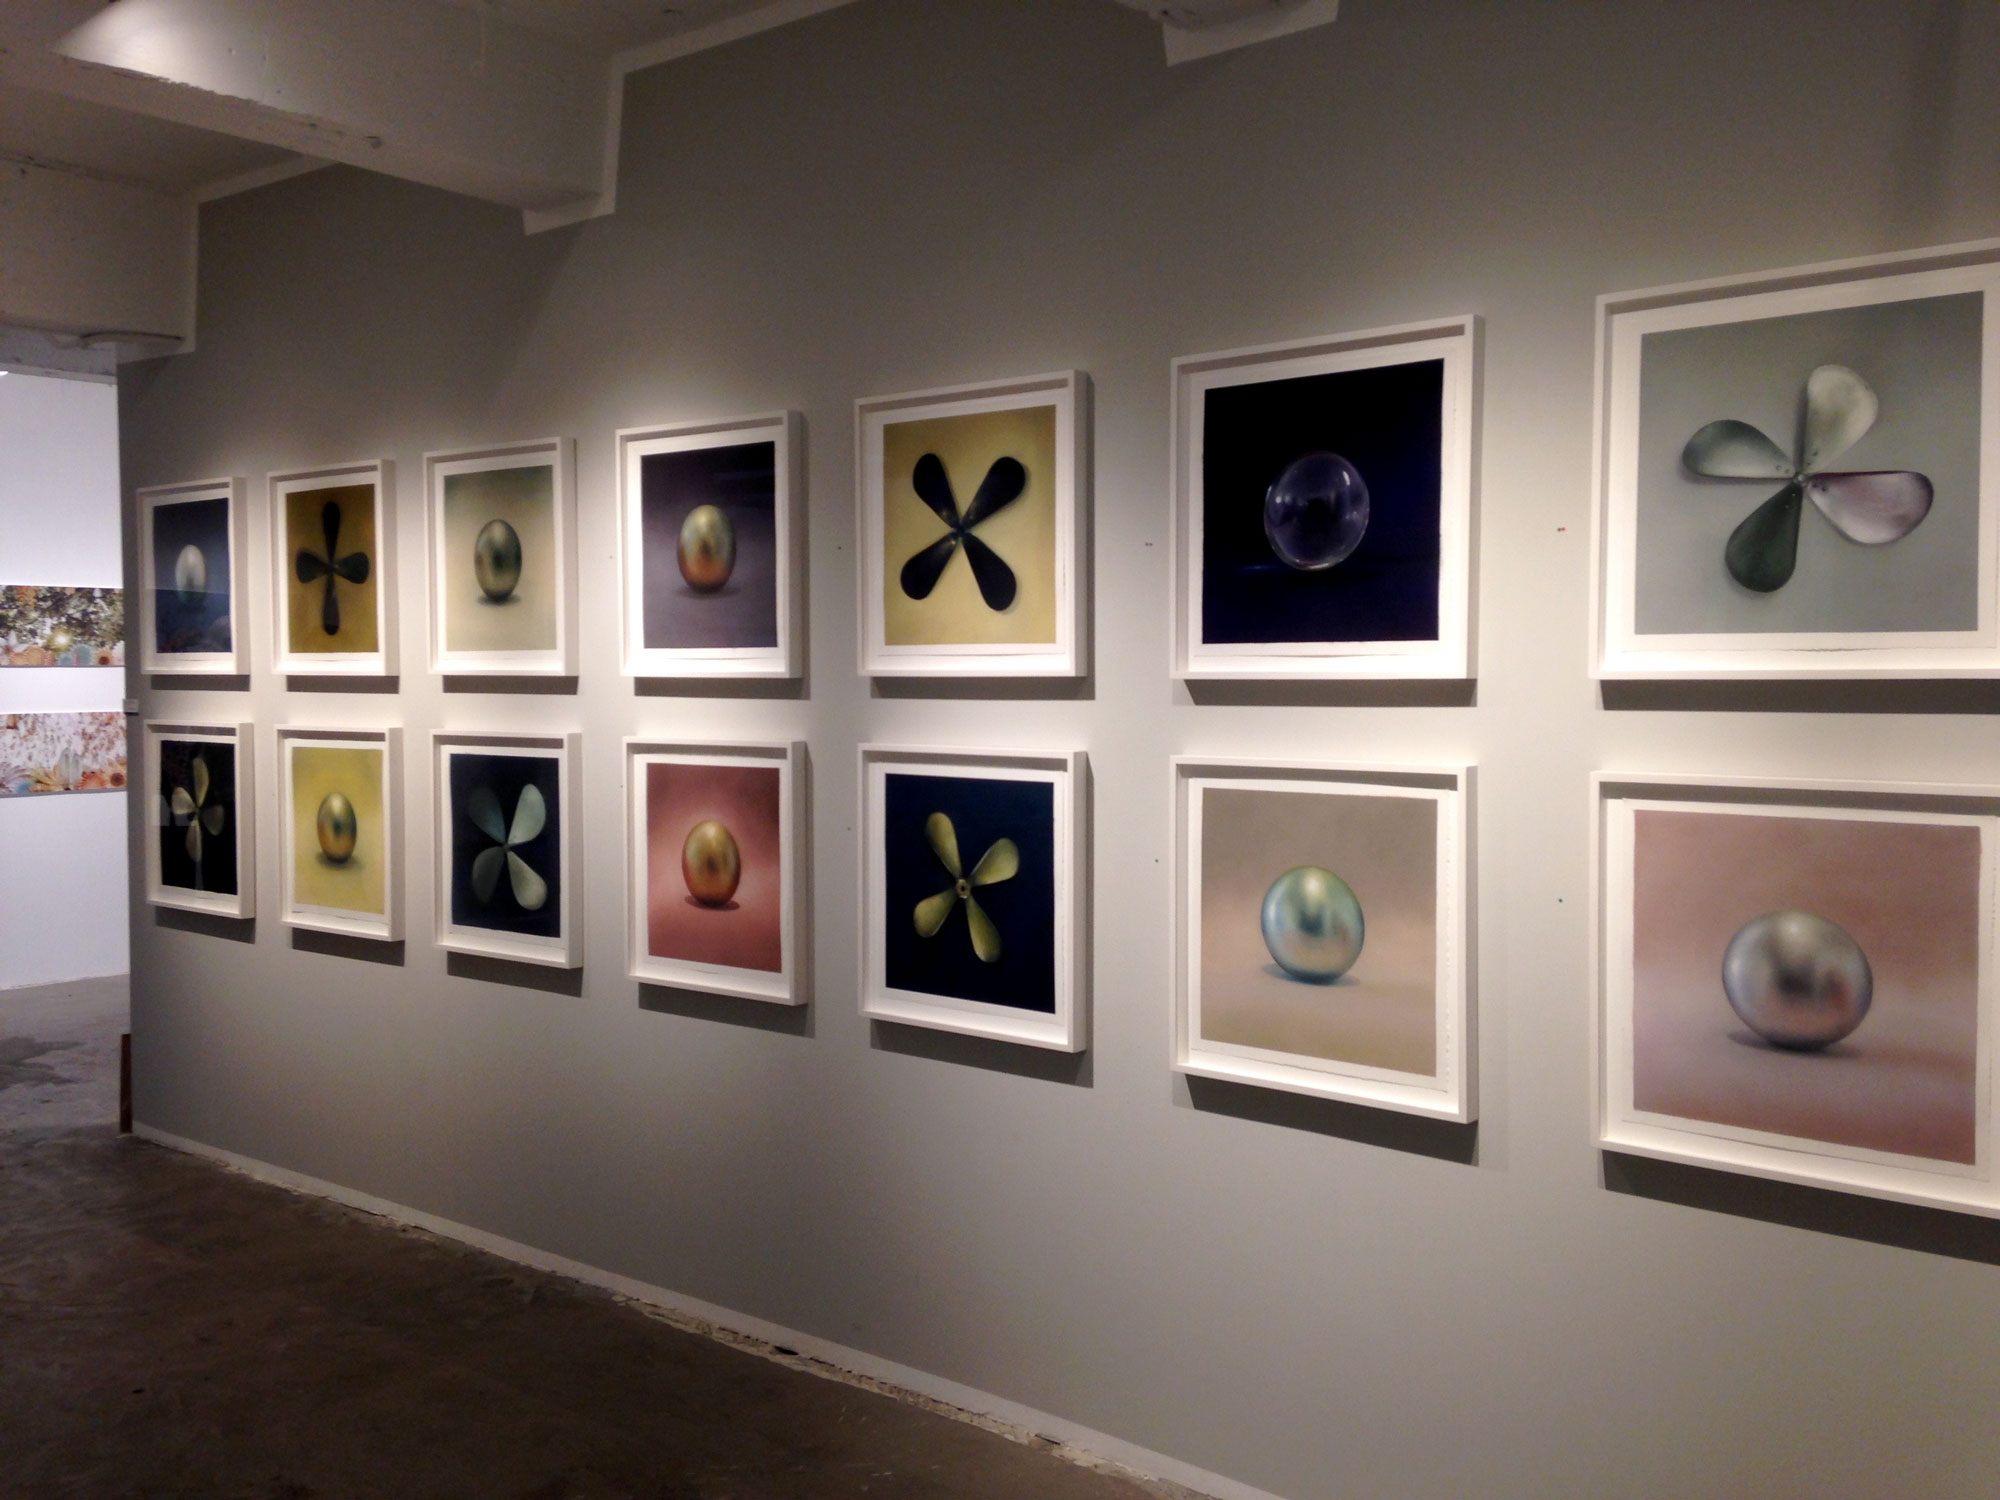 Exo exhibit at Patricia Sweetow Gallery